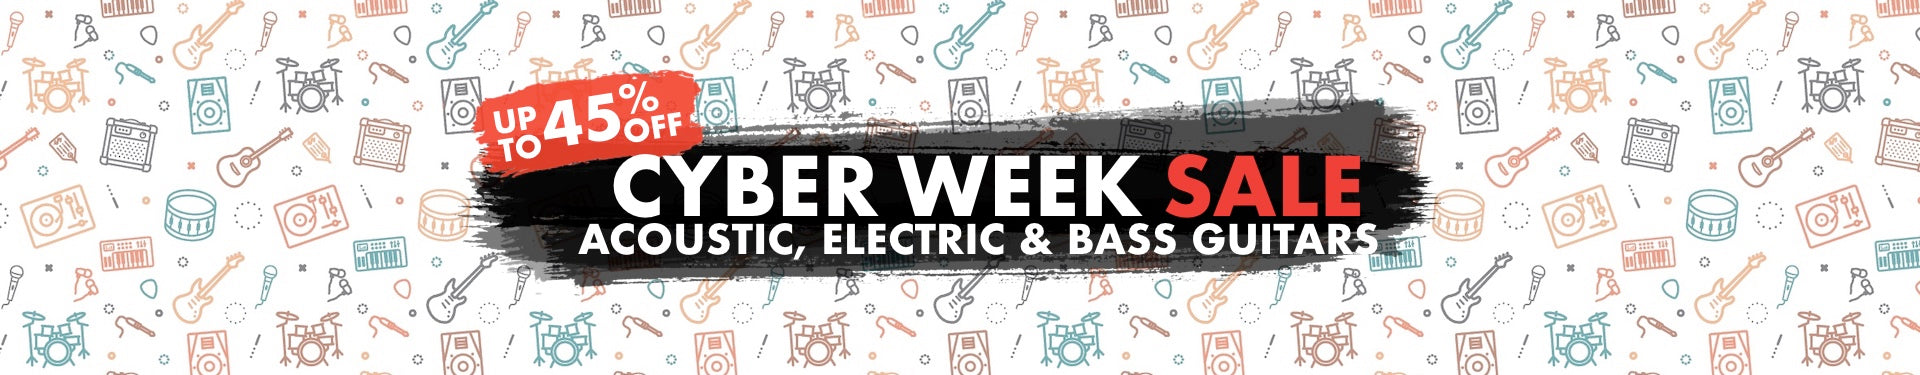 Cyber Week Acoustic, Electric & Bass Guitars